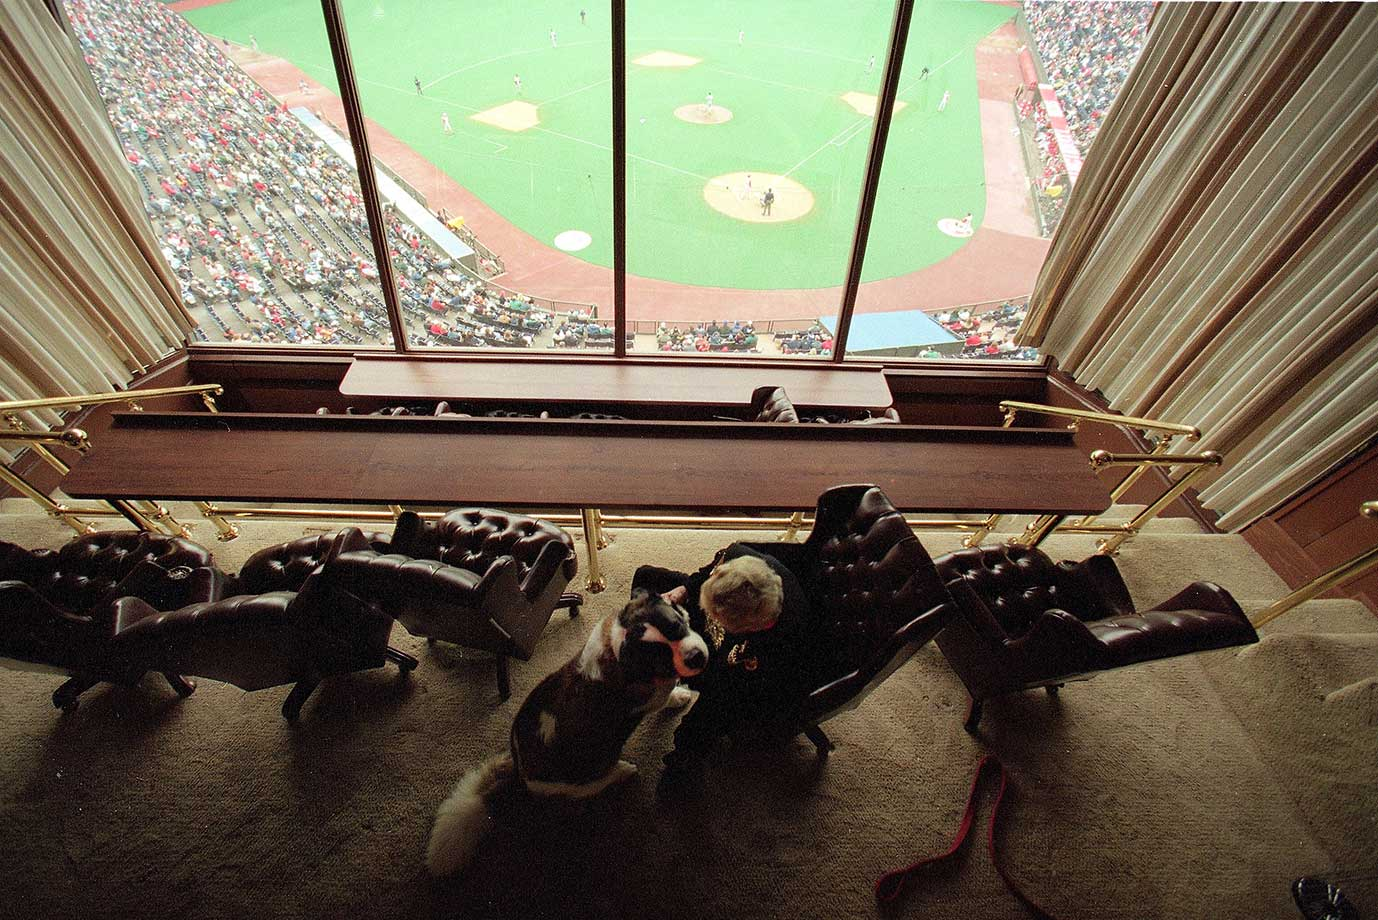 Former Cincinnati Reds owner Marge Schott in her luxury box at Riverfront Stadium.